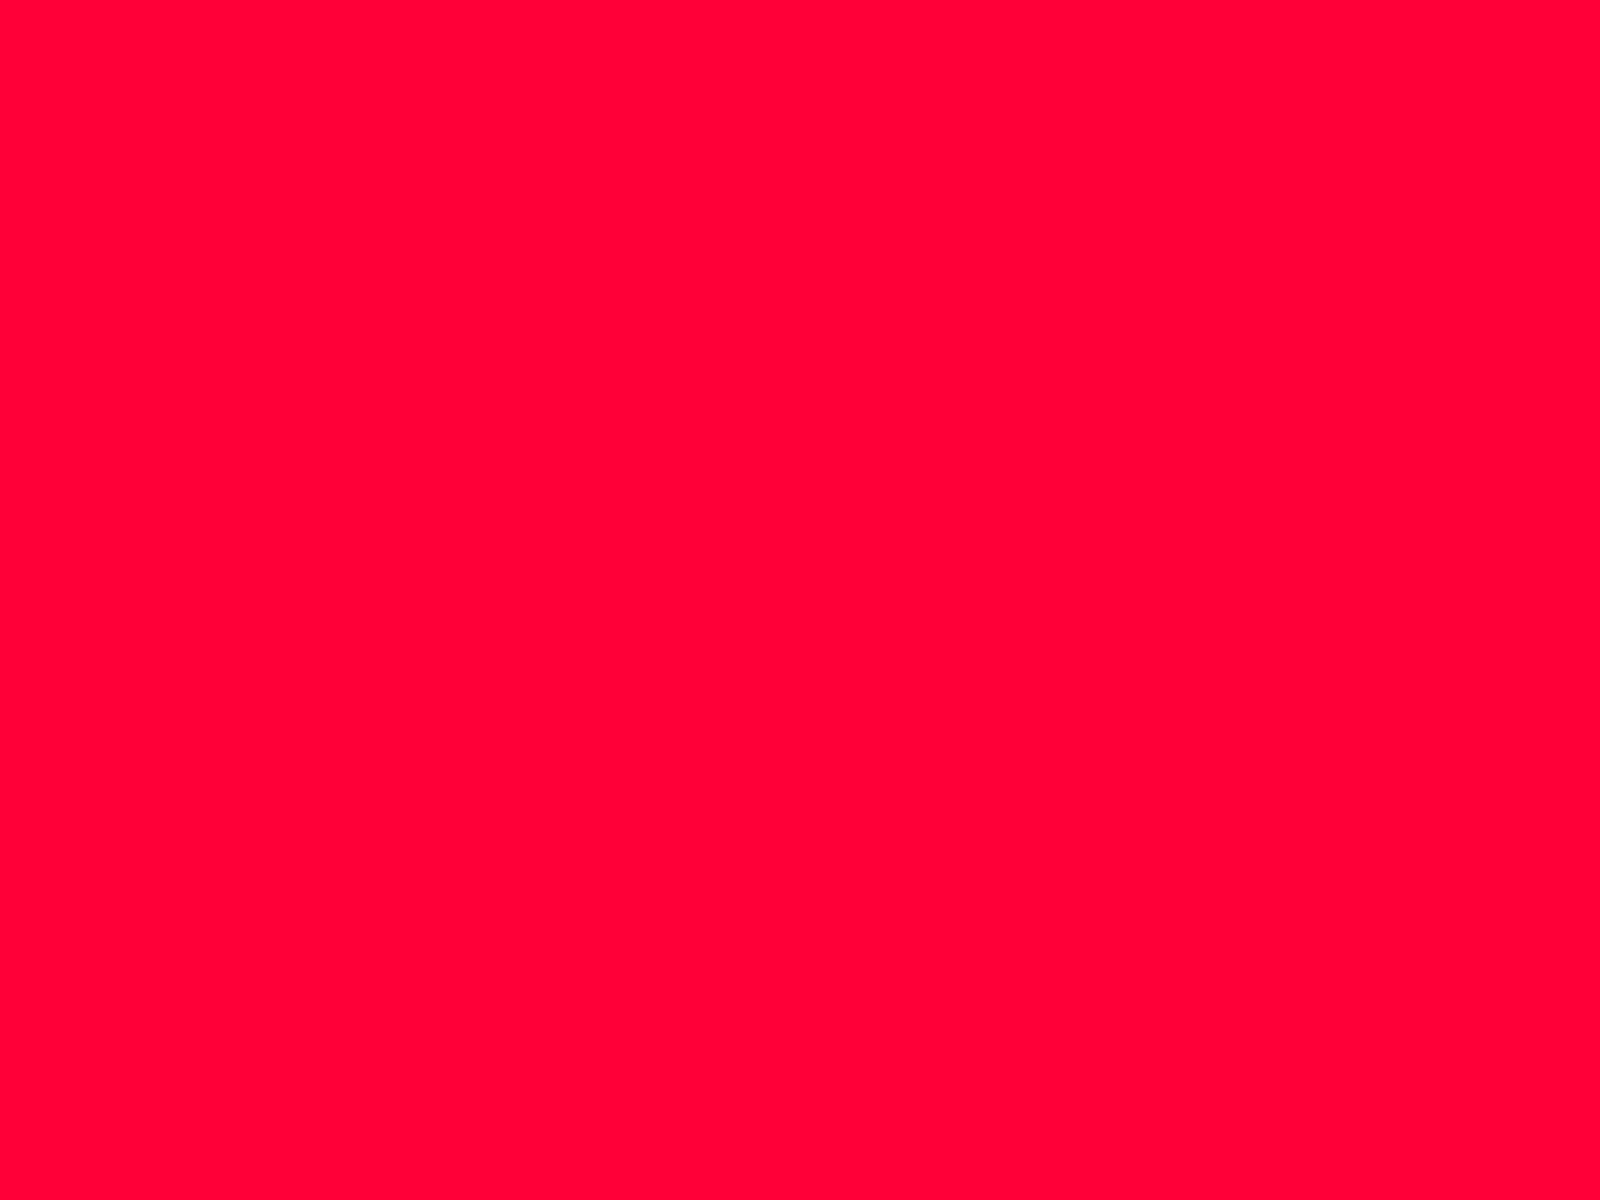 1600x1200 Carmine Red Solid Color Background